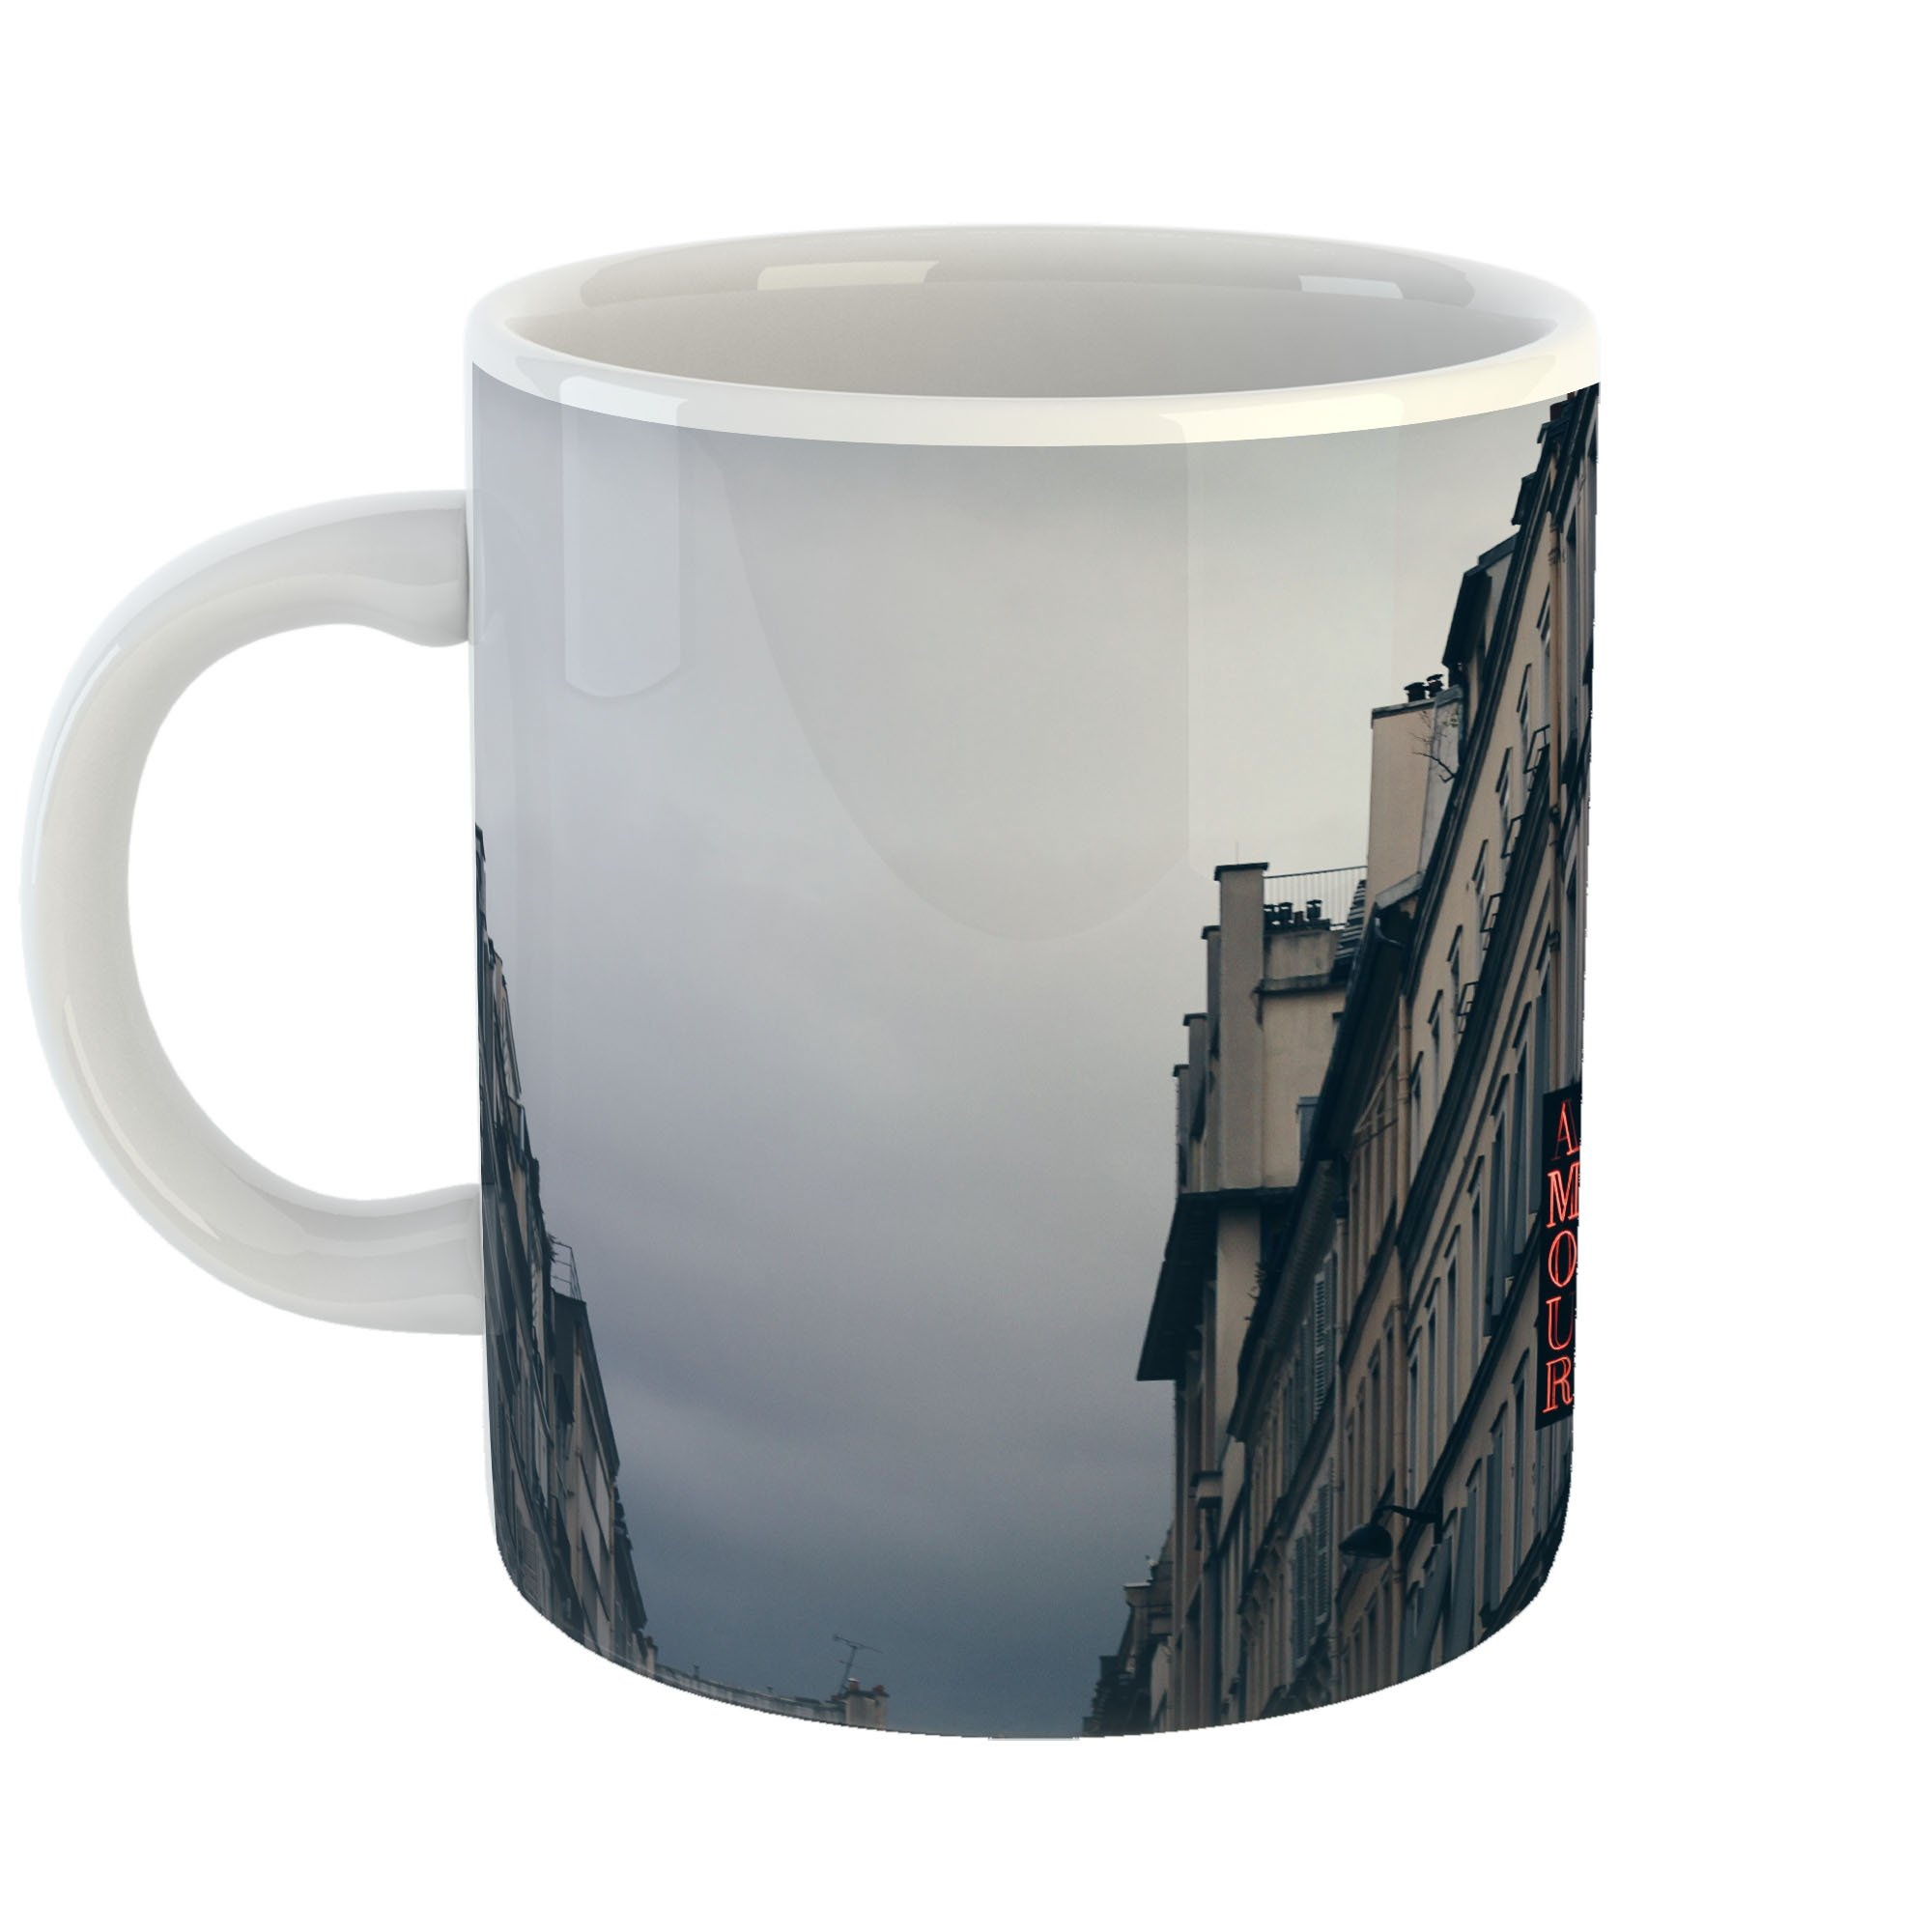 Westlake Art - Hotel France - 11oz Coffee Cup Mug - Modern Picture Photography Artwork Home Office Birthday Gift - 11 Ounce (FEE4-BD646)